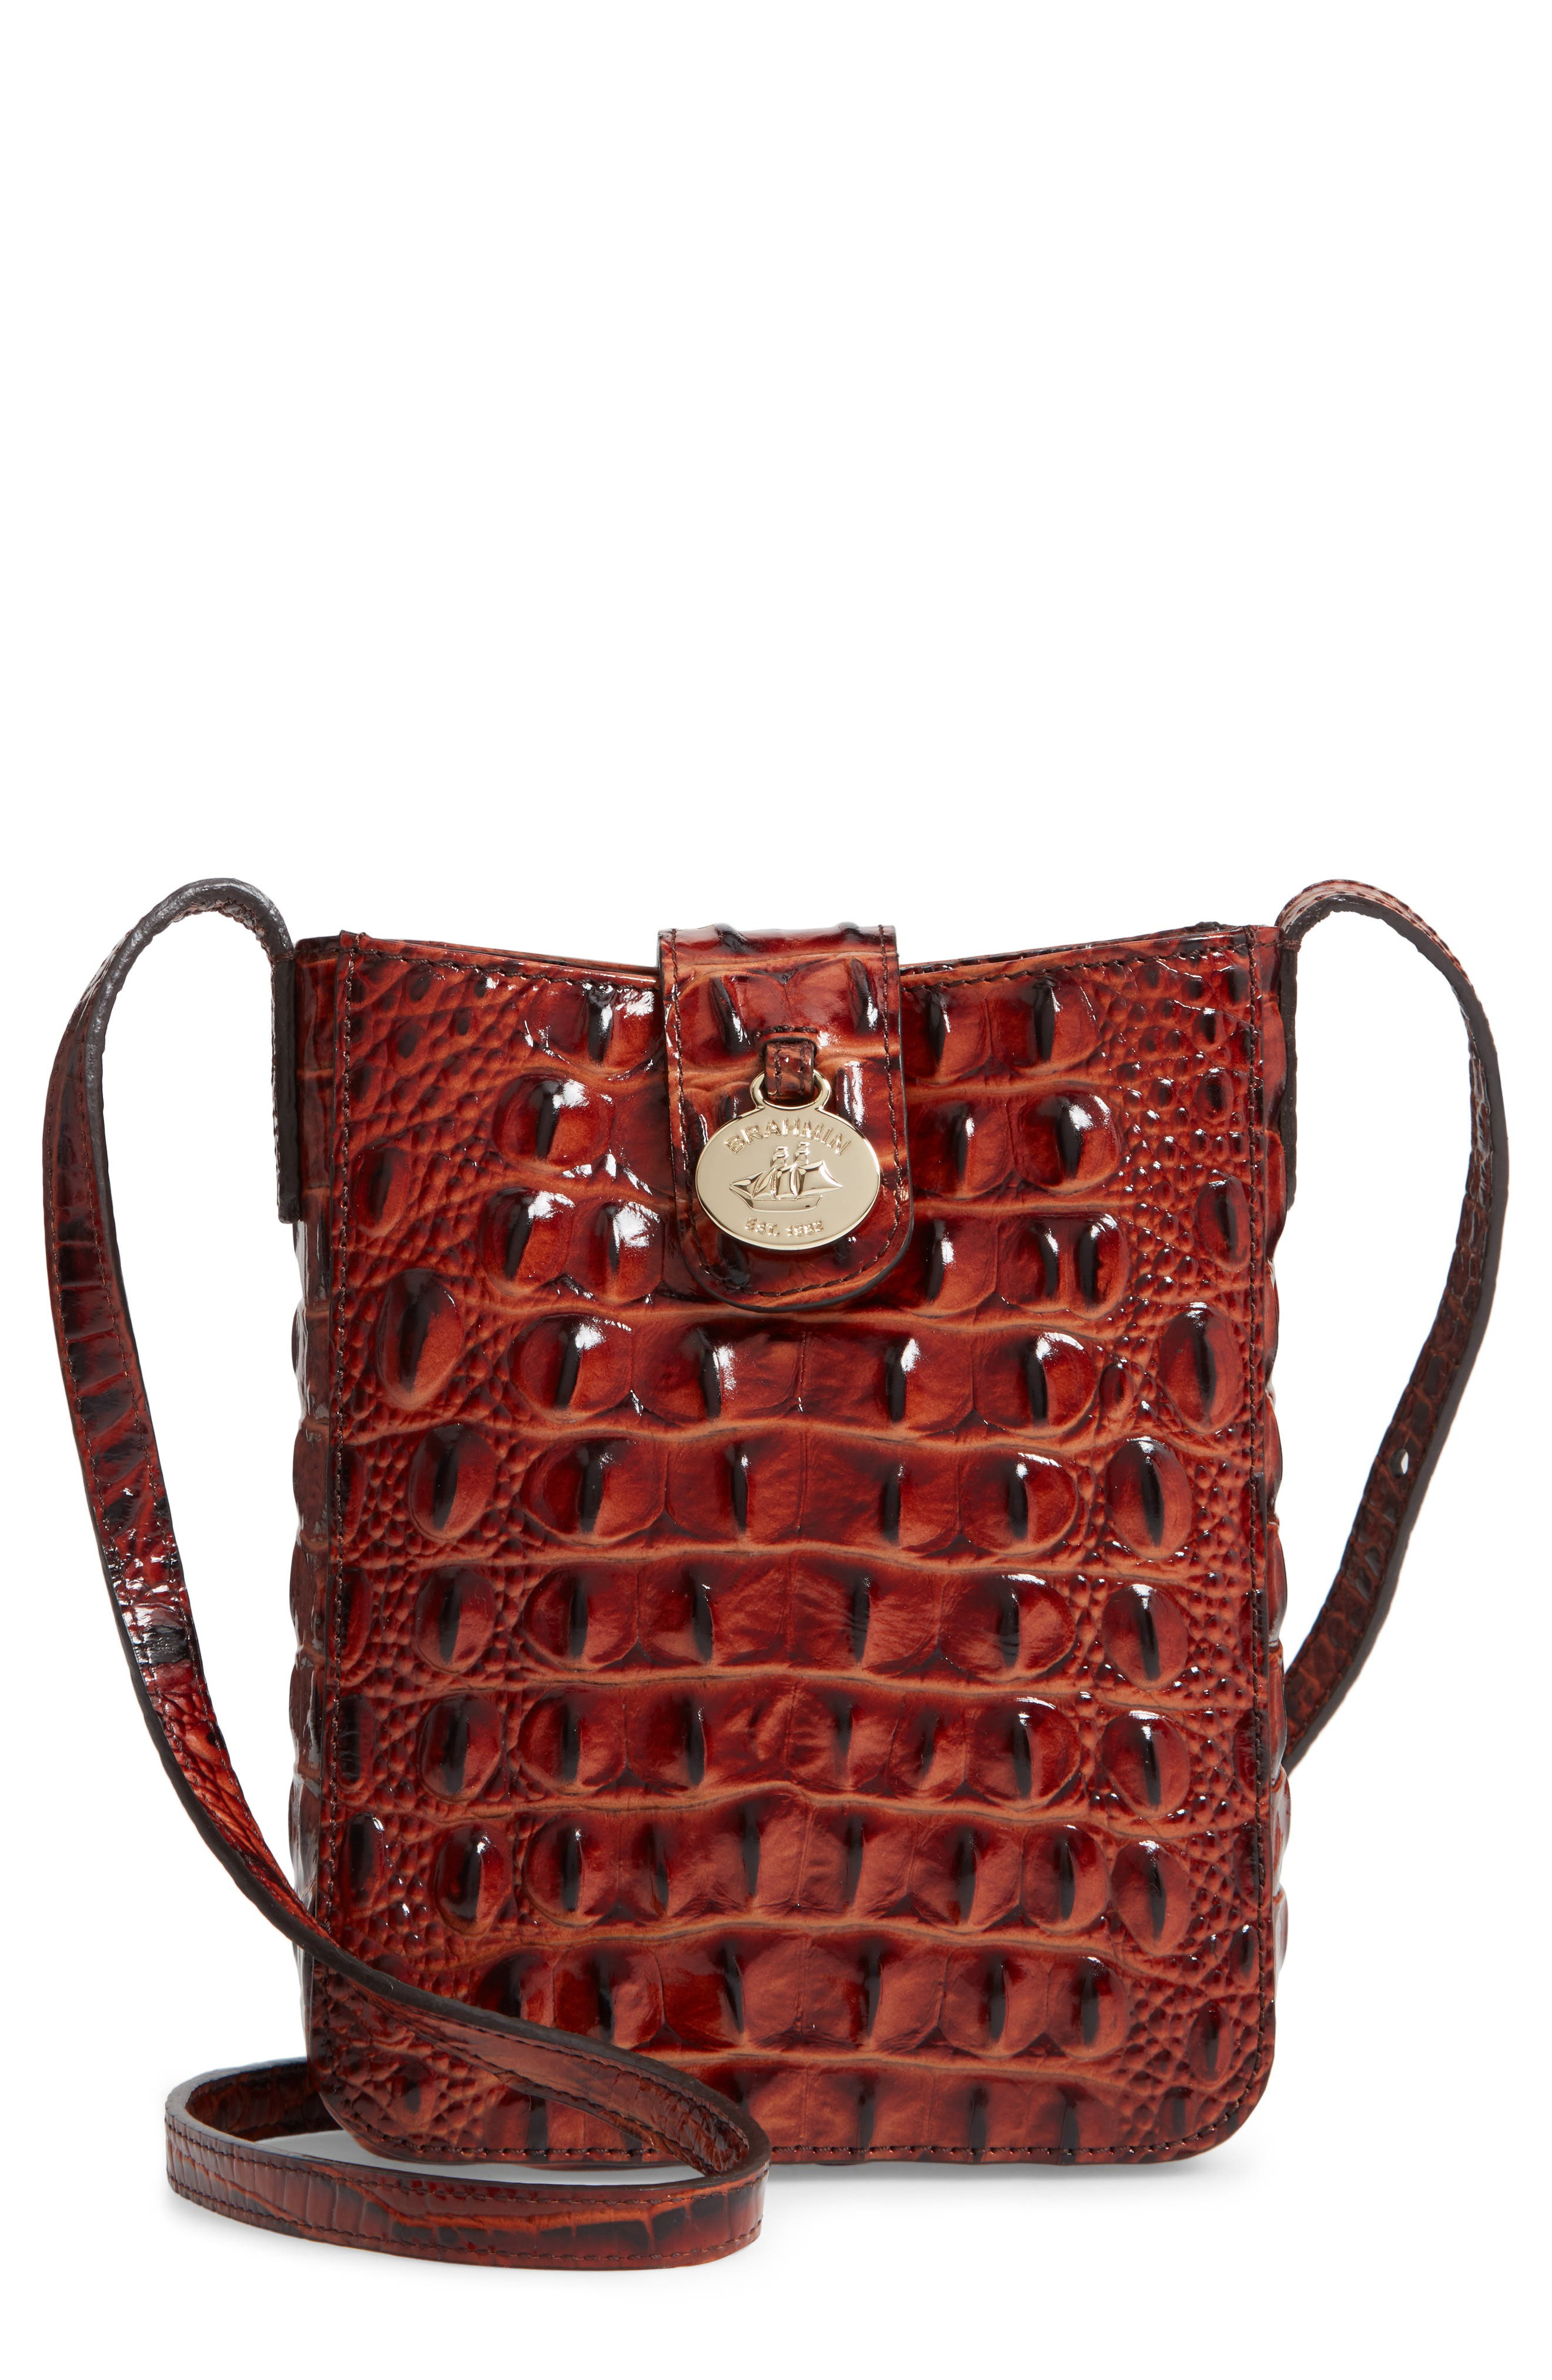 Marley Croc Embossed Leather Crossbody Bag,                             Main thumbnail 1, color,                             PECAN